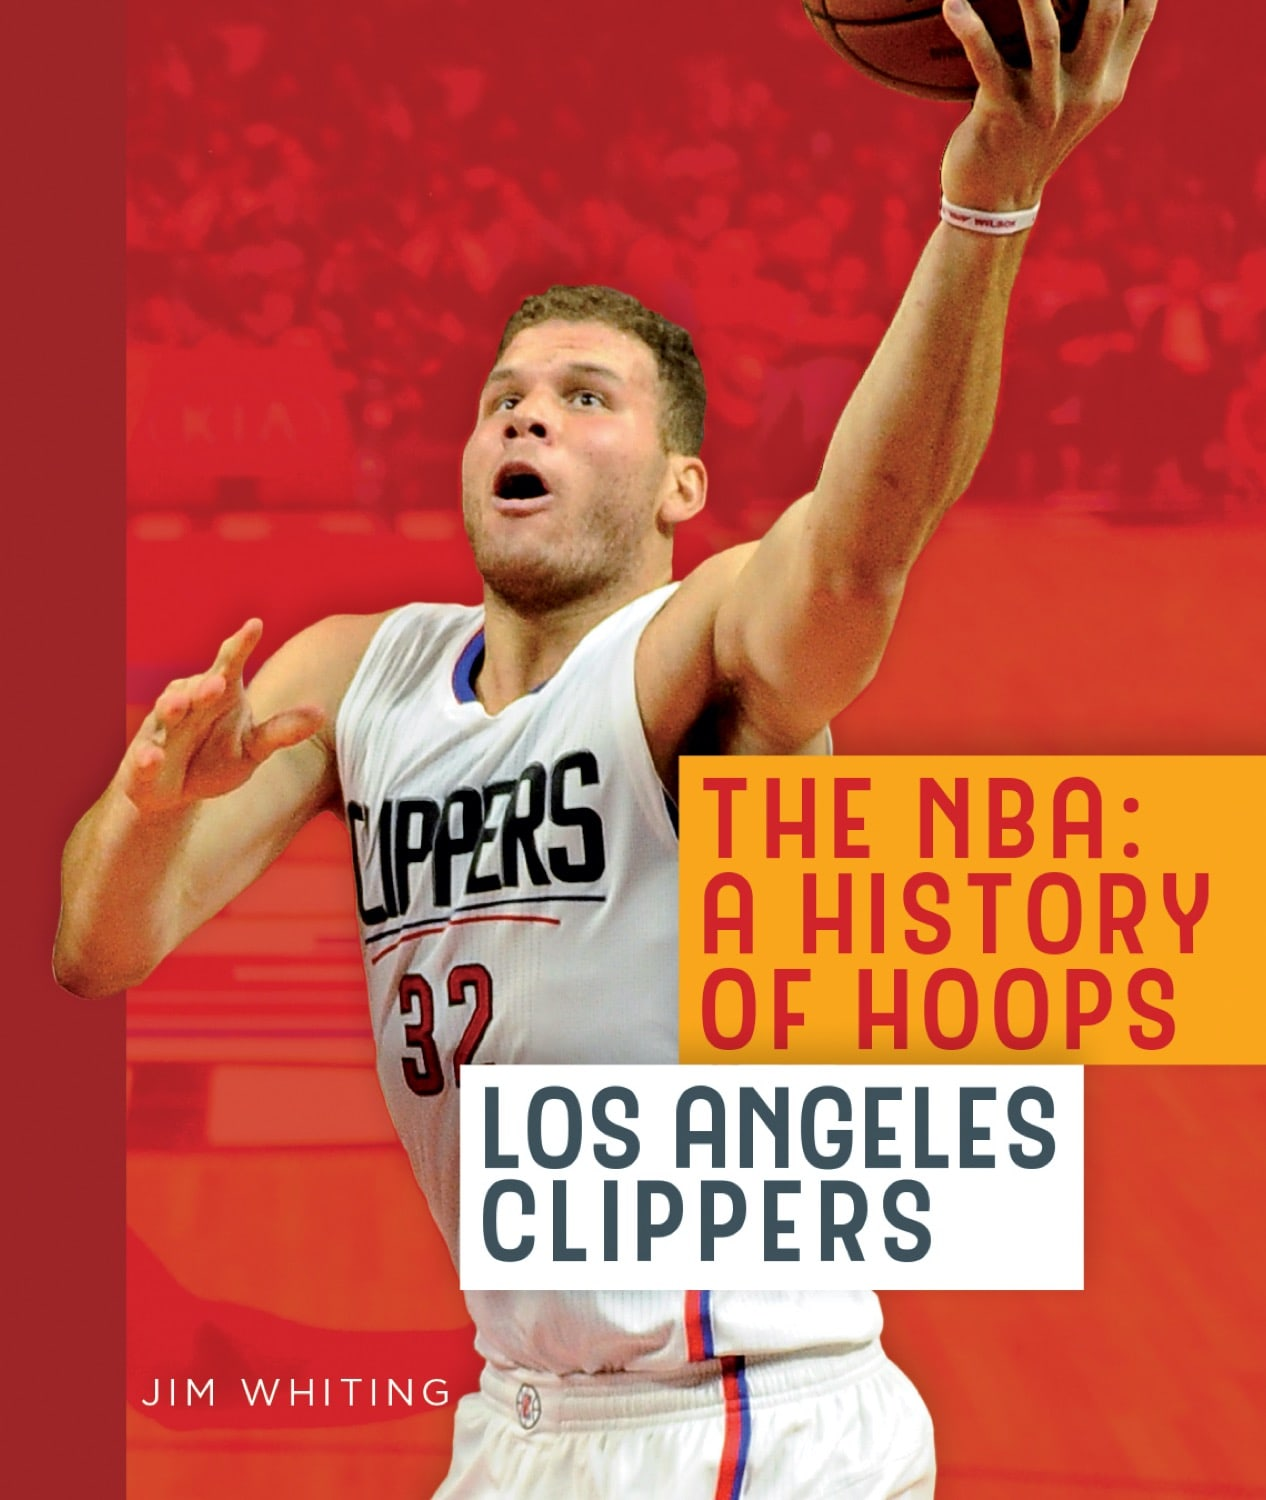 The NBA: A History of Hoops: Los Angeles Clippers